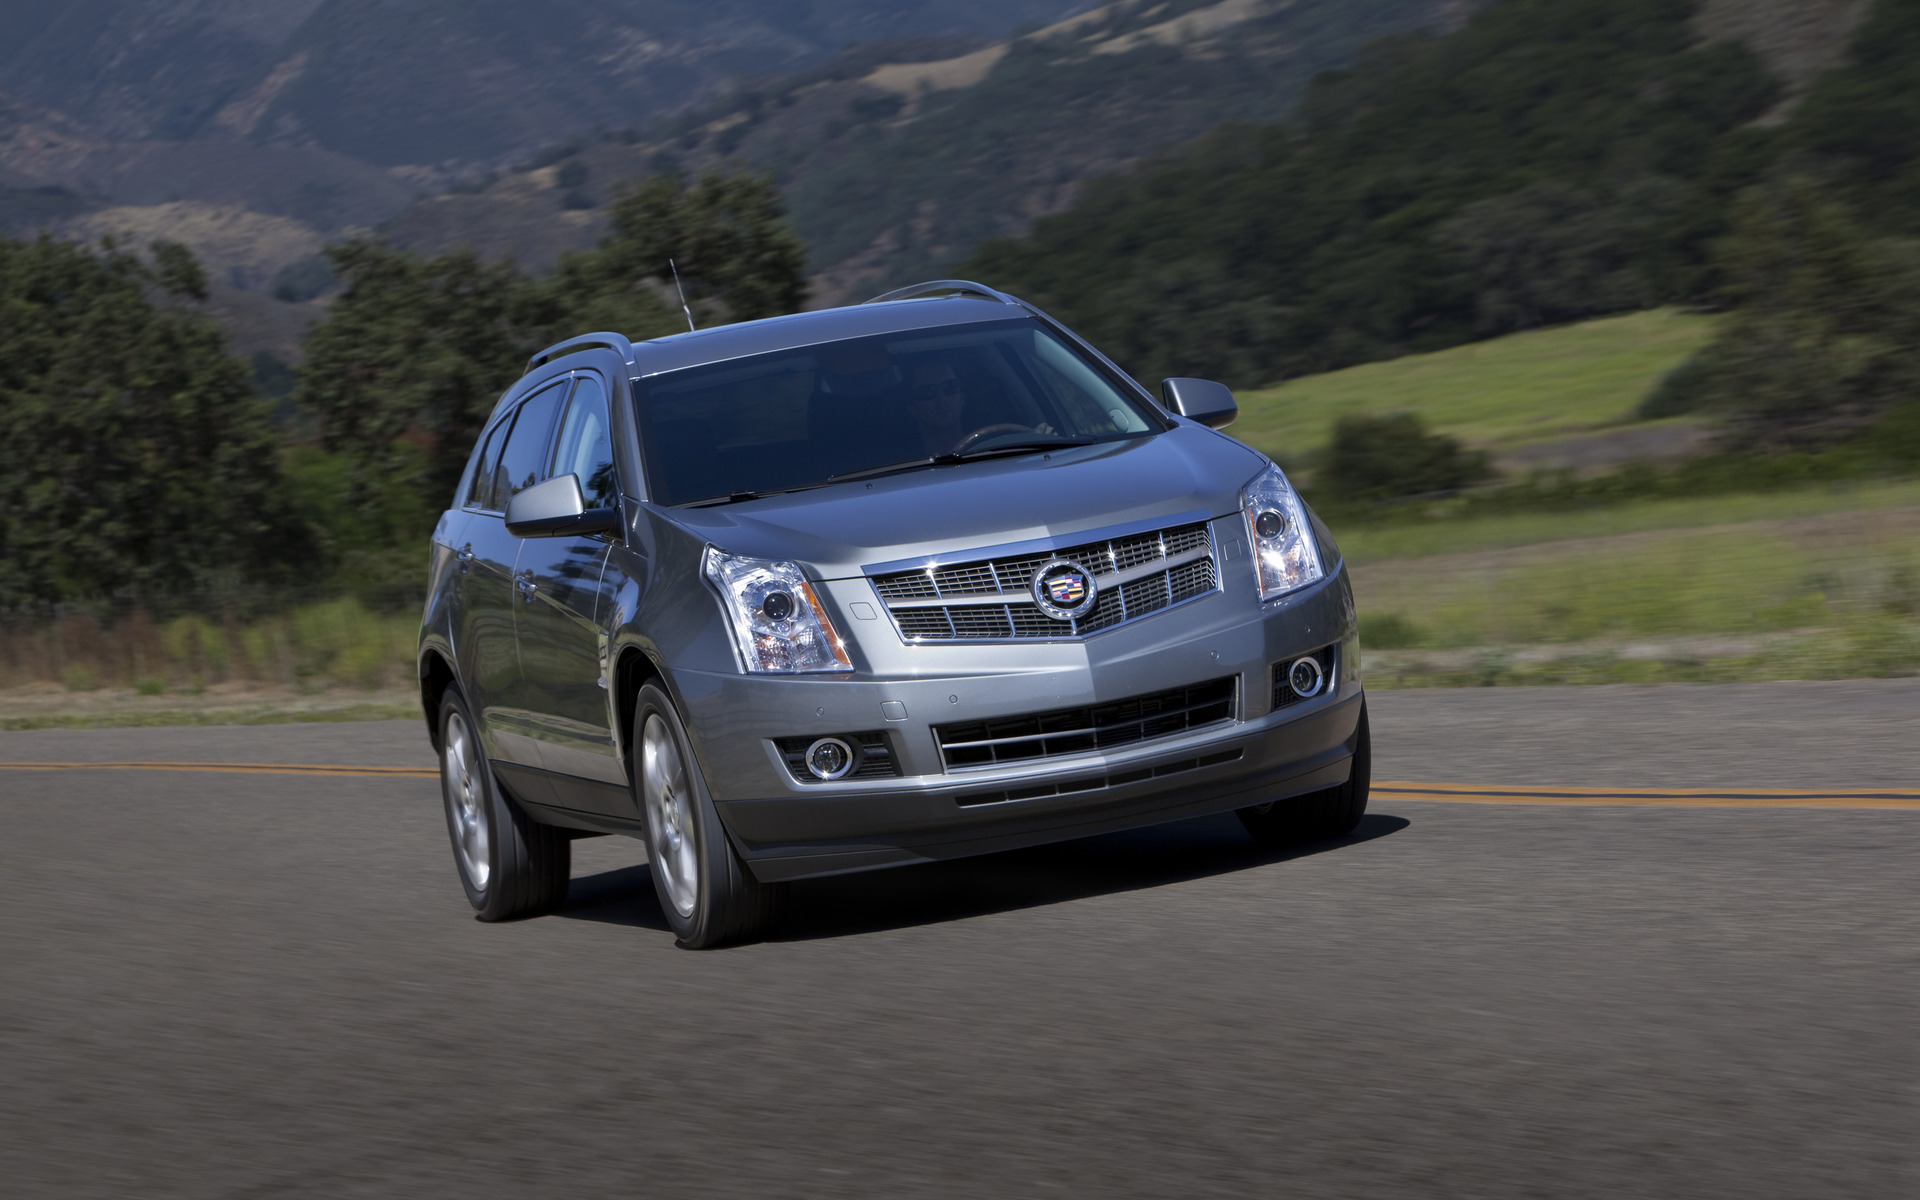 srx vroom delivery sale all cadillac buy used years home online srxs catalog for